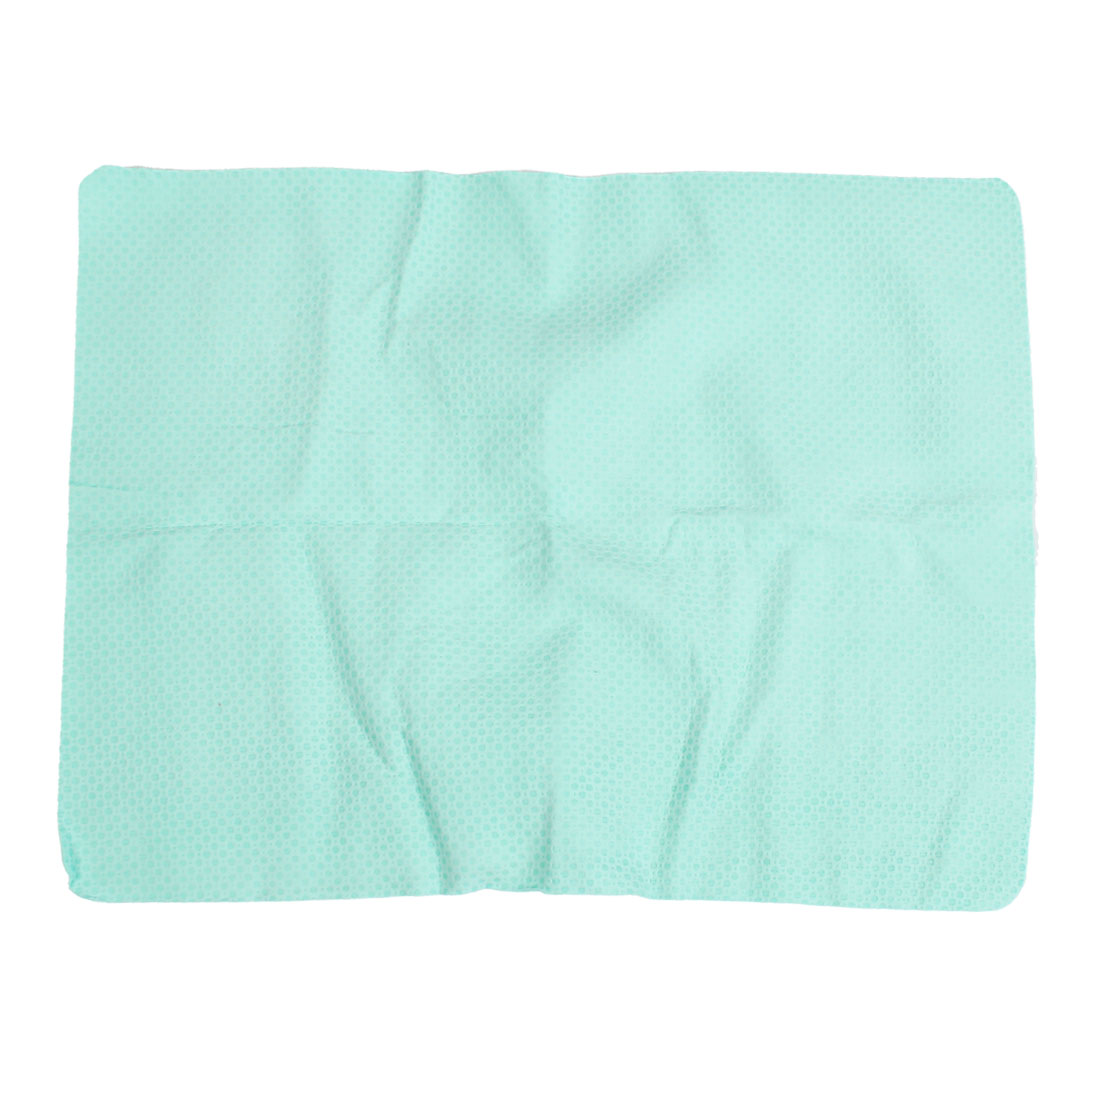 43cm x 32cm Green Retangle Synthetic Chamois Towel Cleaning Tool for Car Home